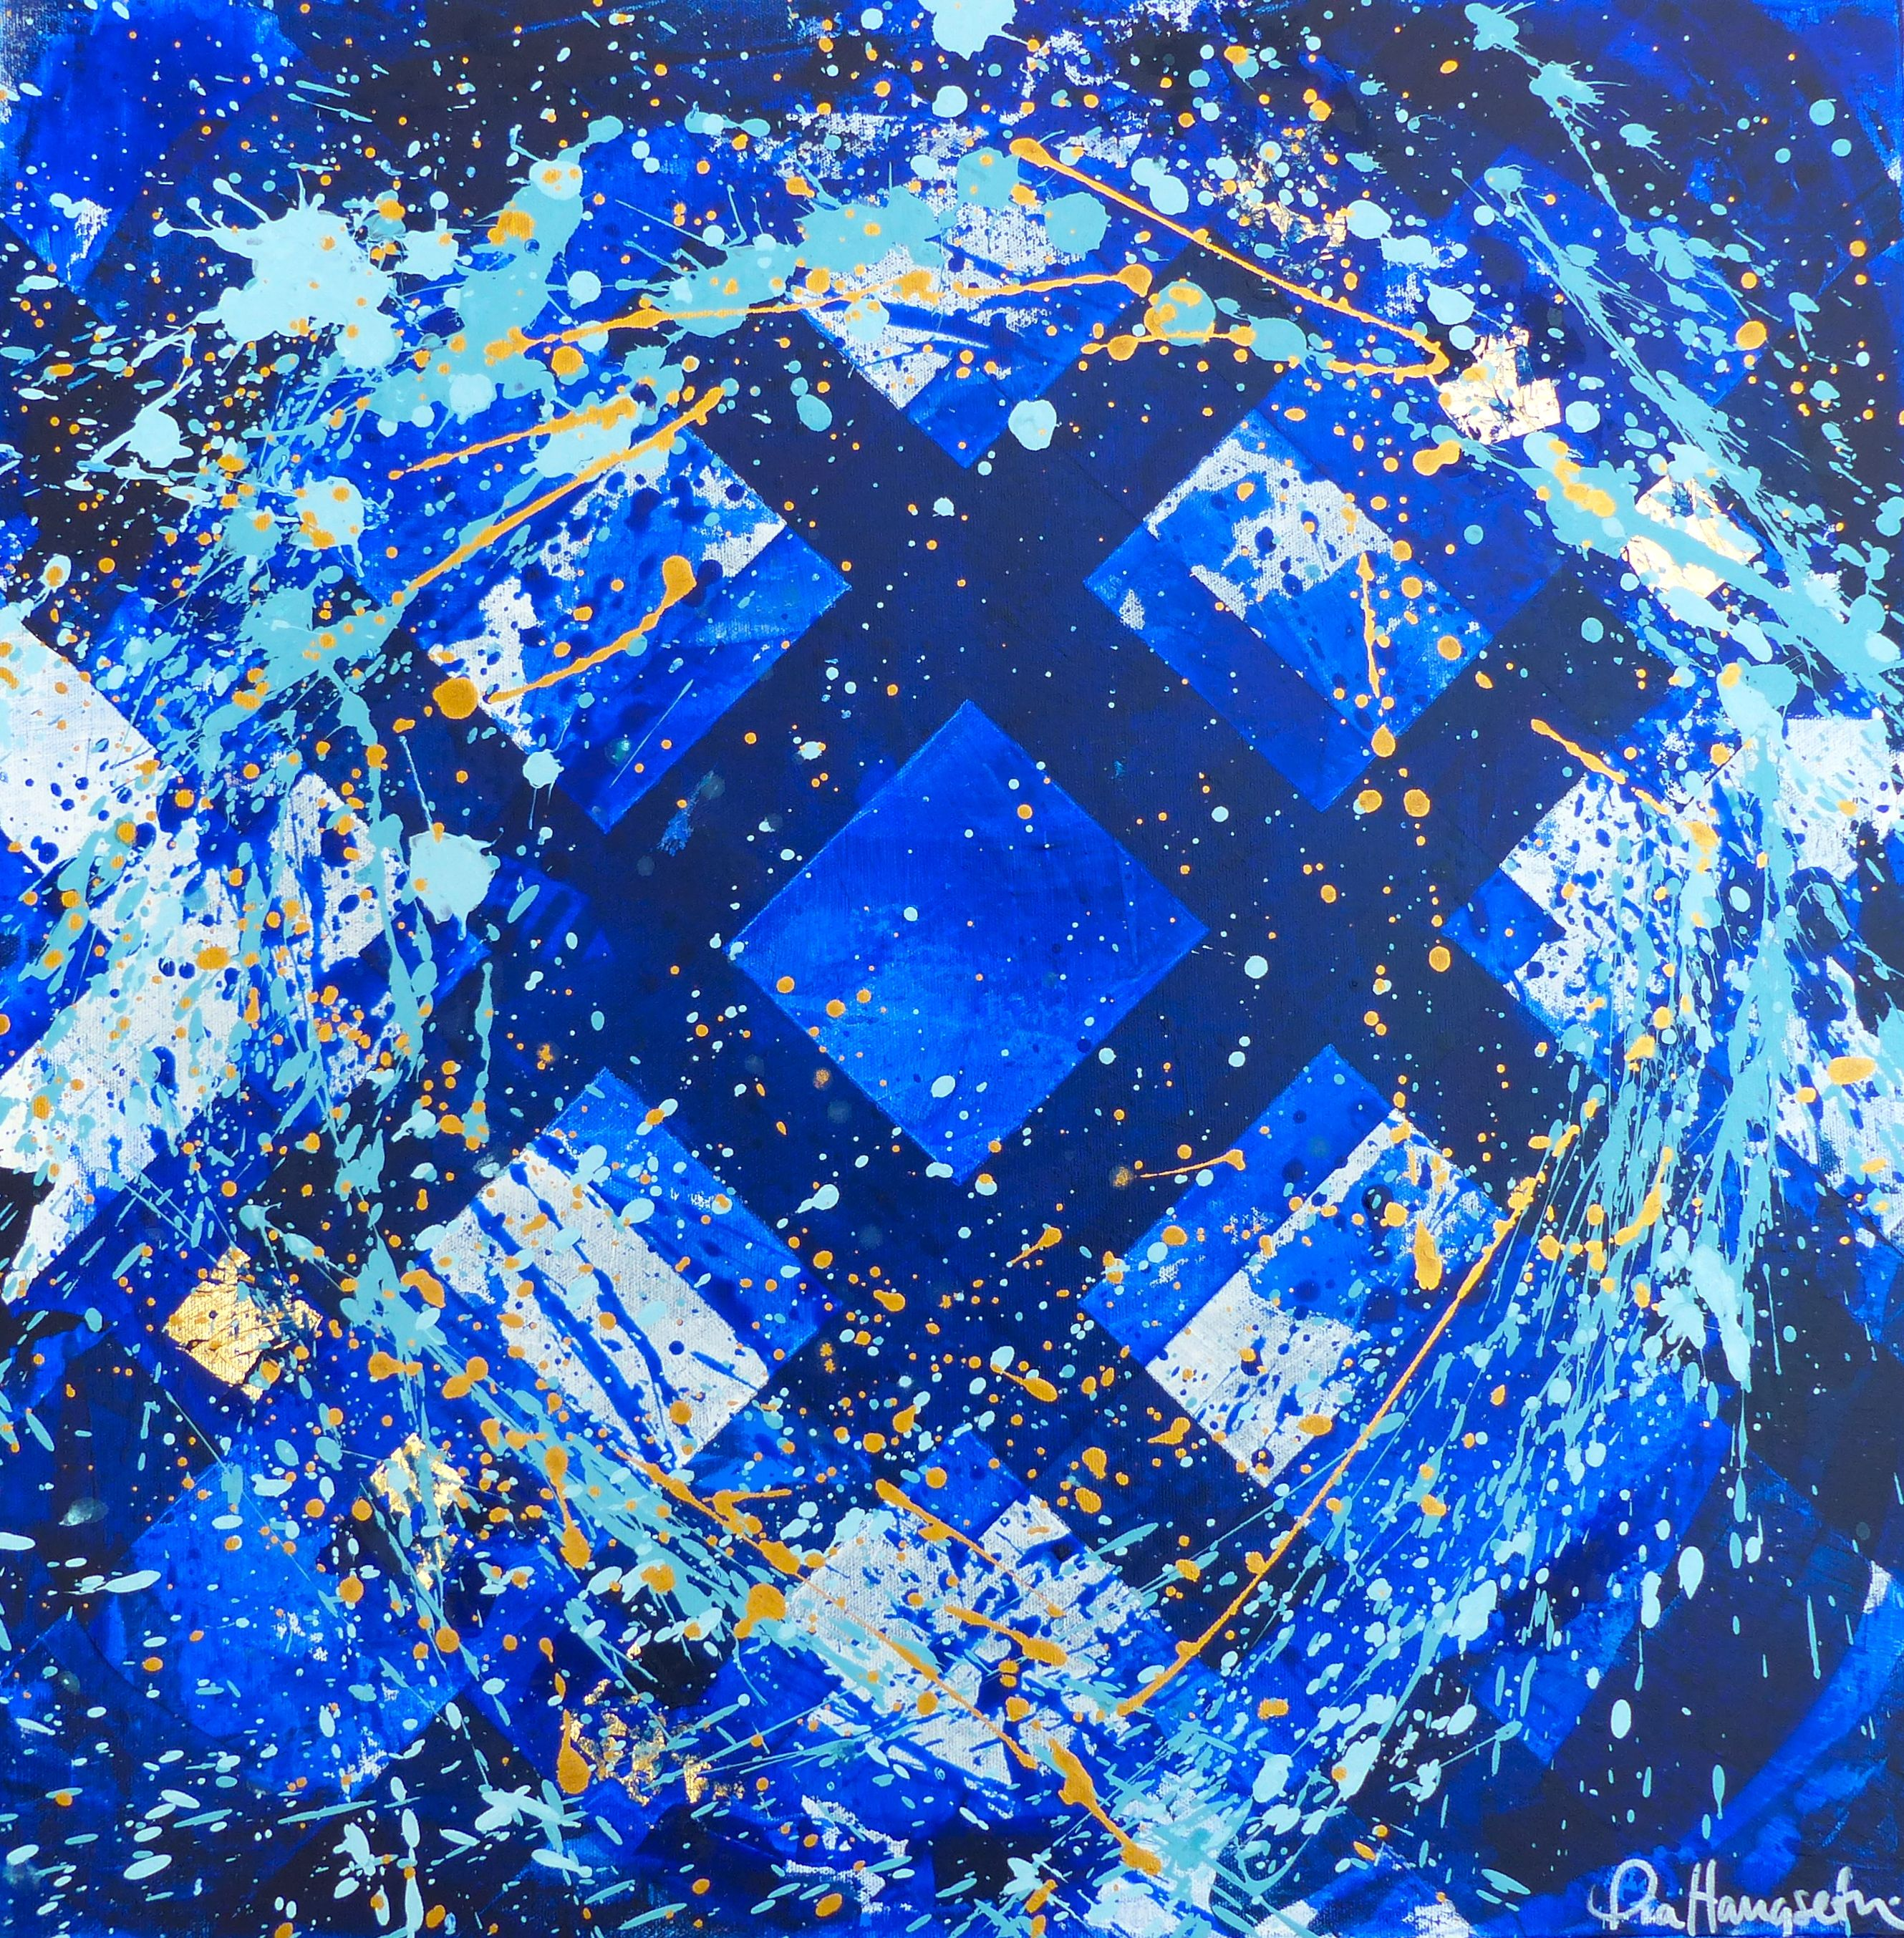 Abstract art by Pia Haugseth